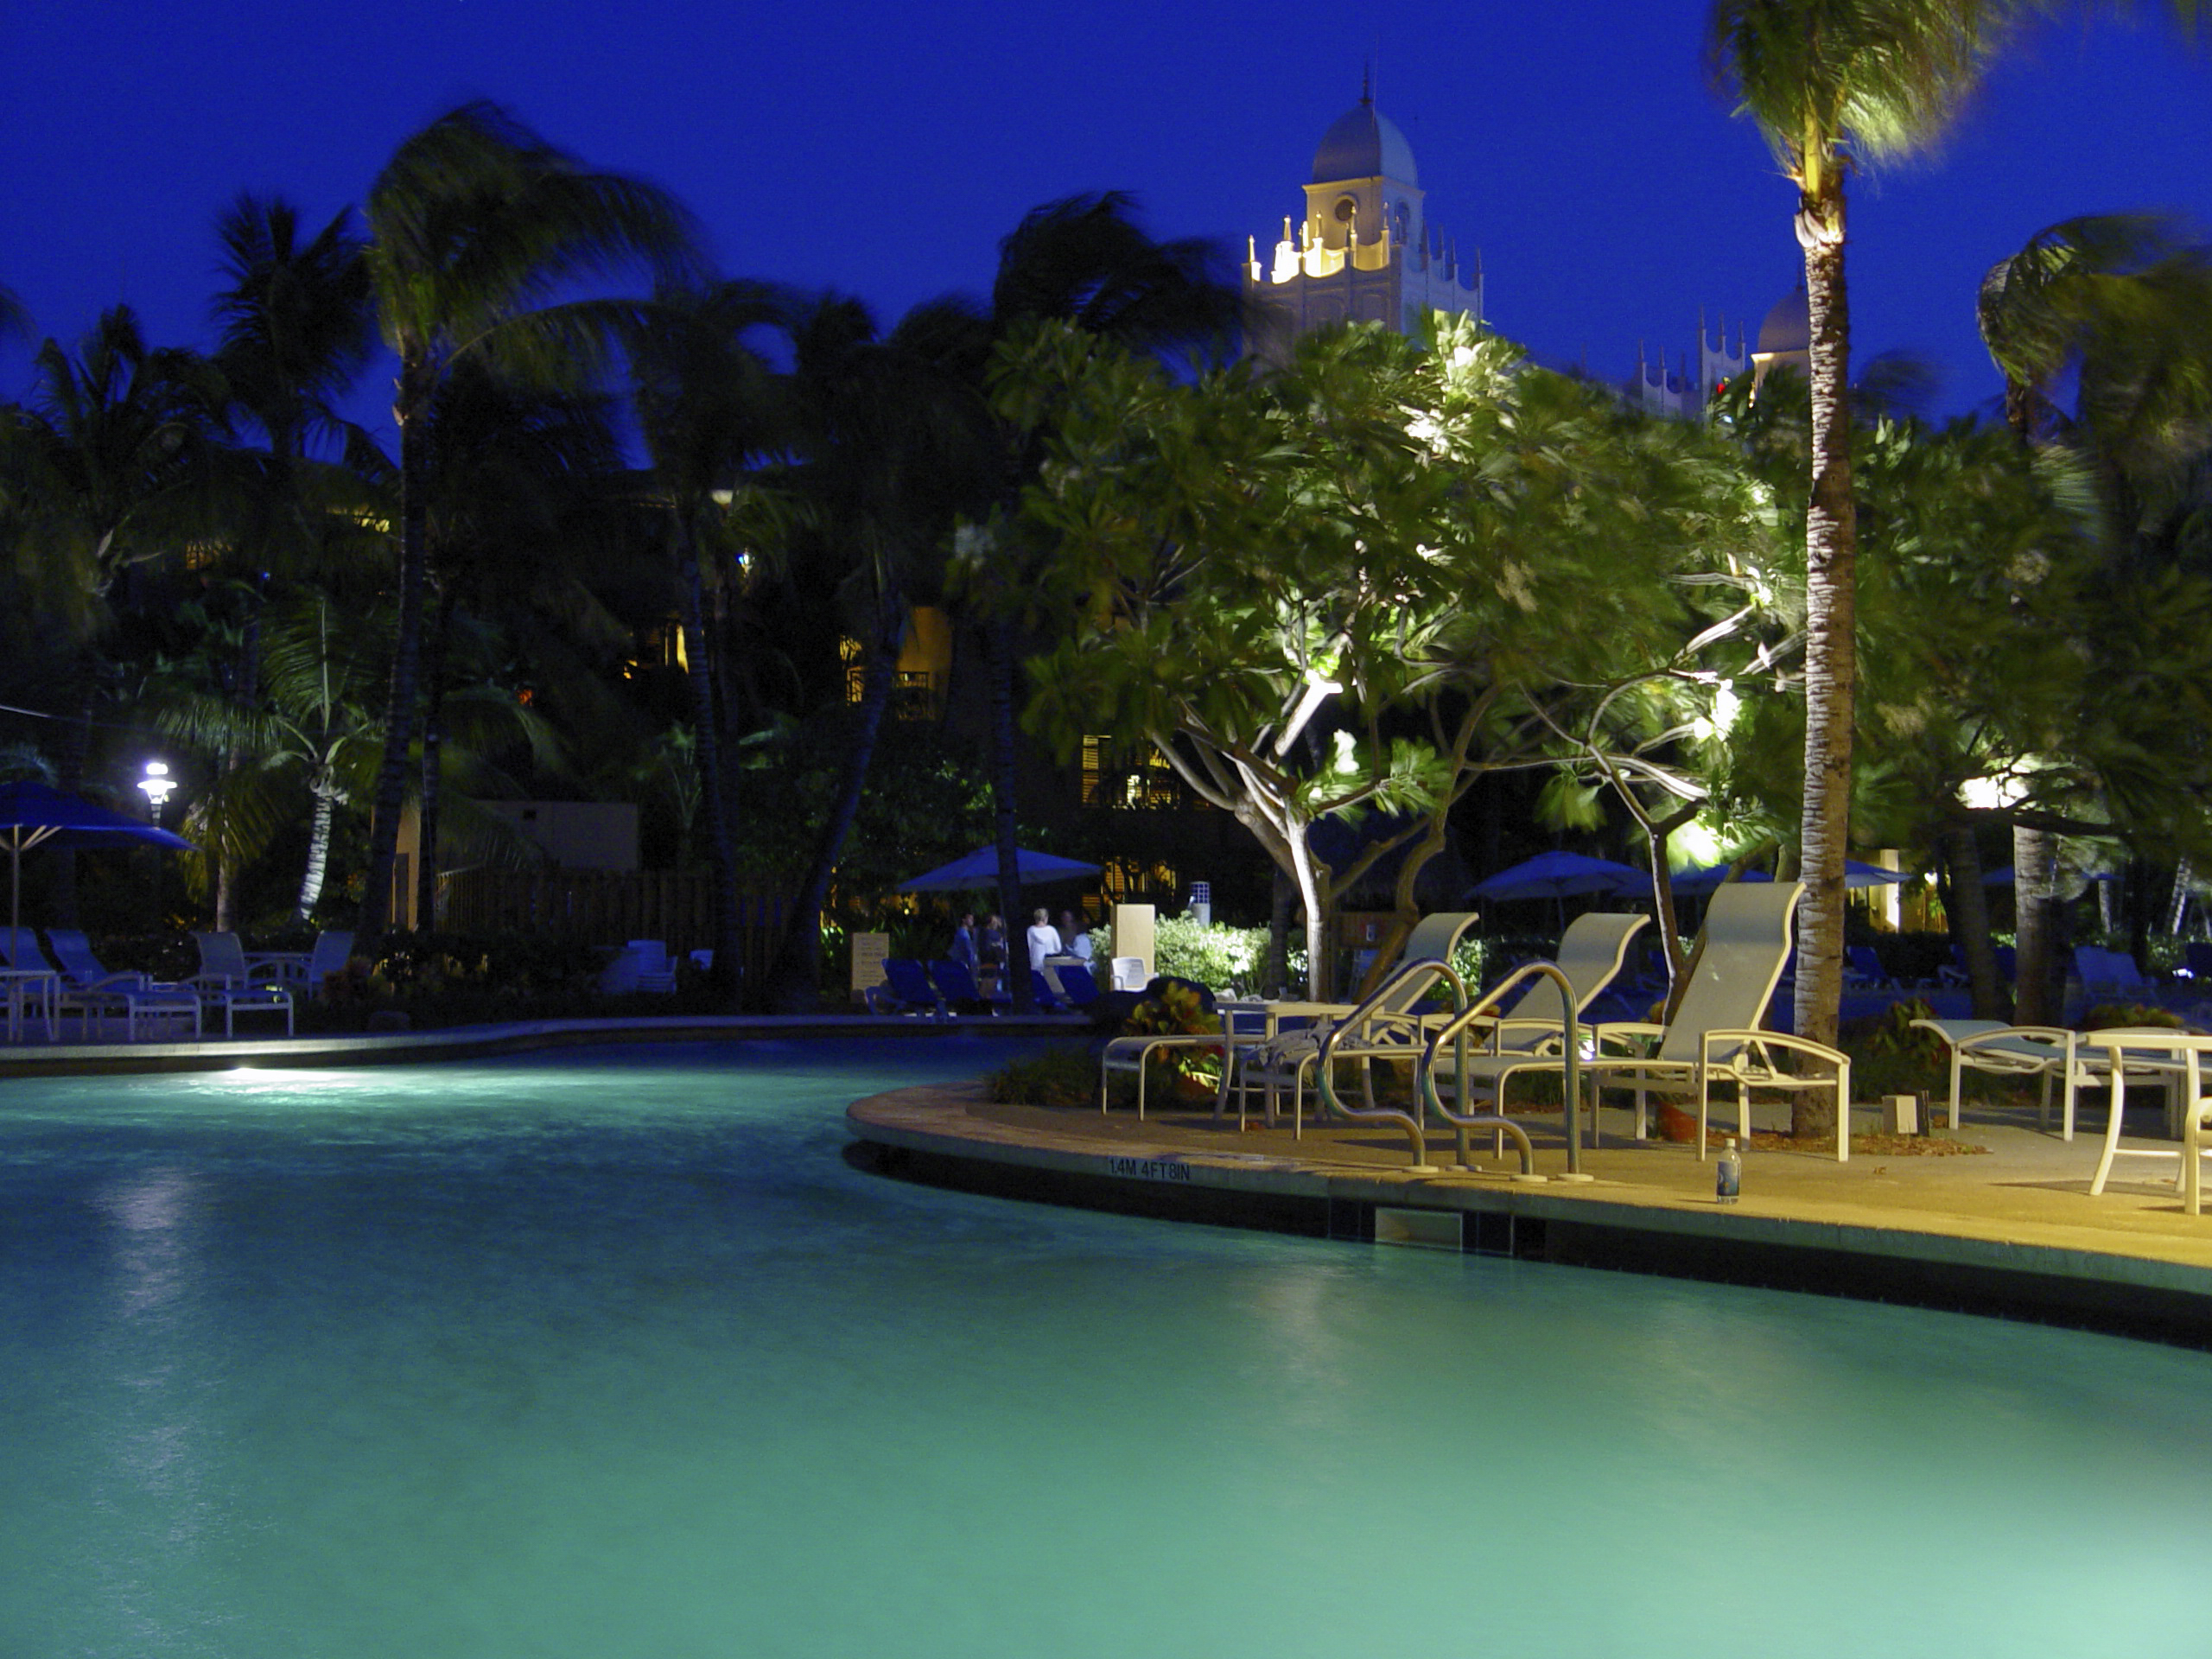 file:aruba radisson resort at night (2888377311) - wikimedia